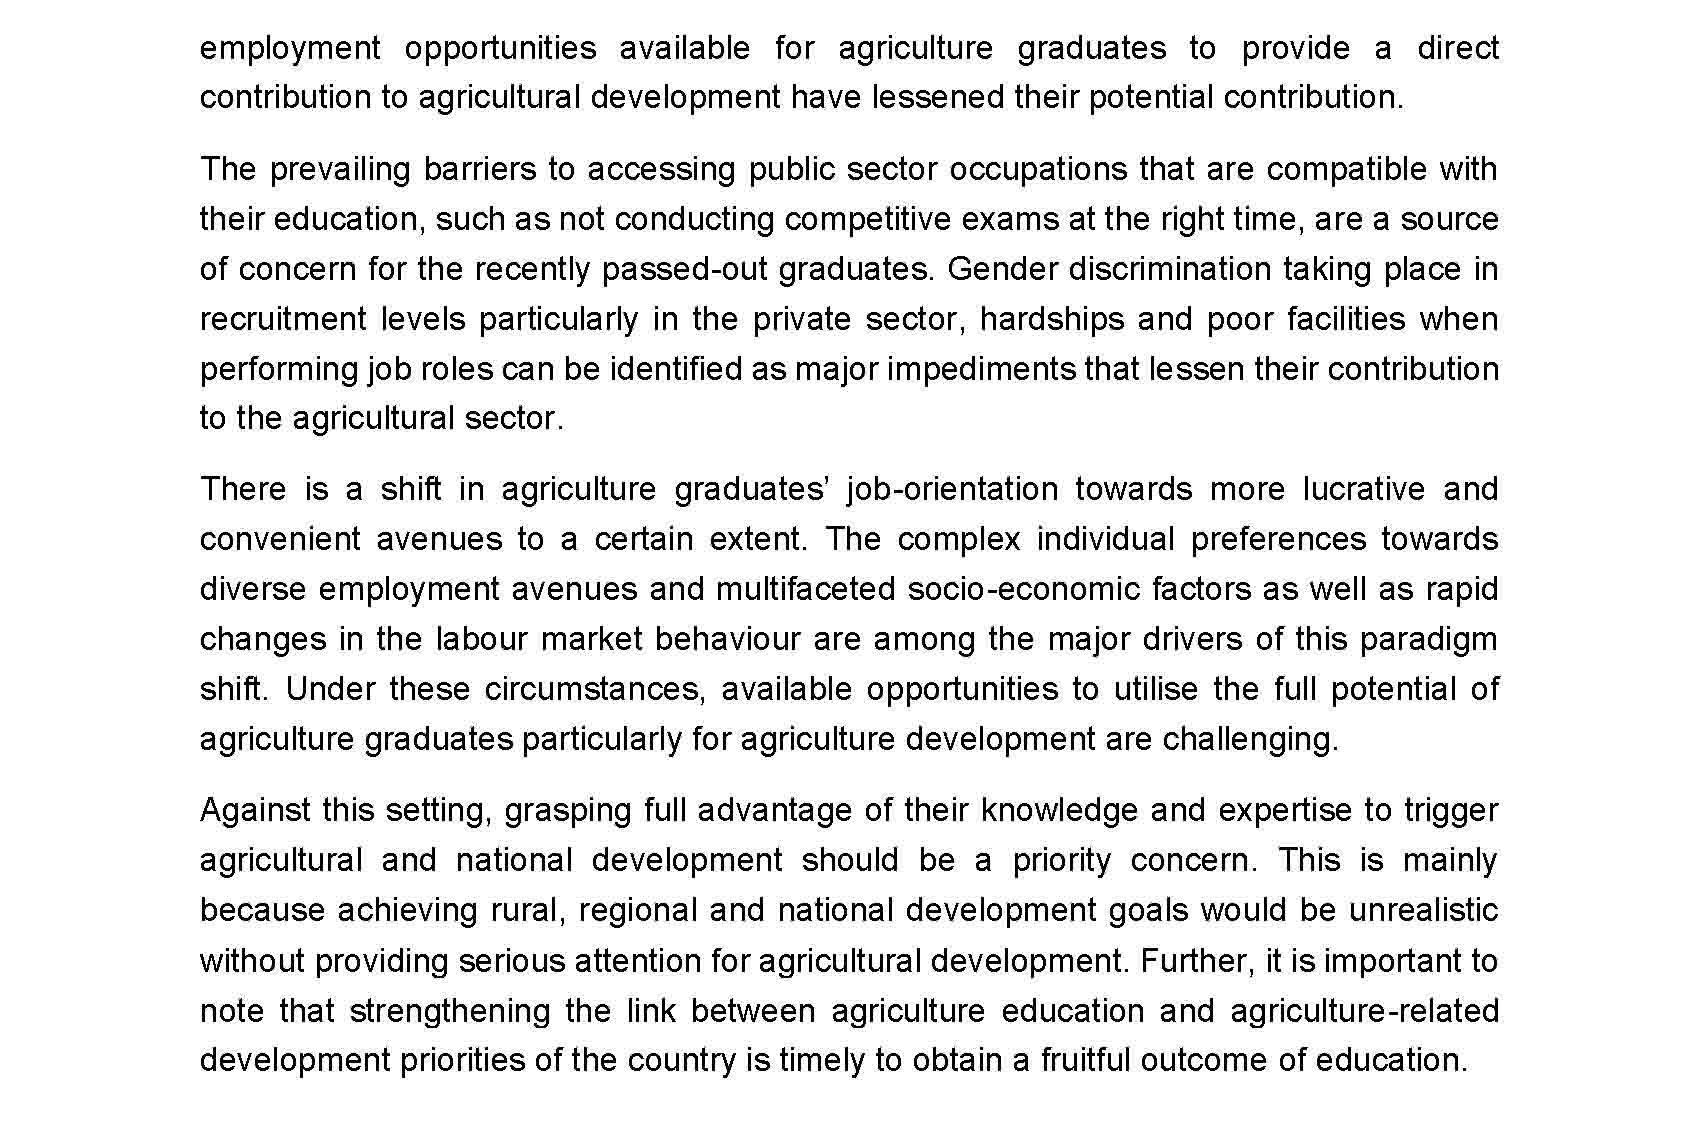 Motivating agriculture graduates with entrepreneurship opportunities Page 4